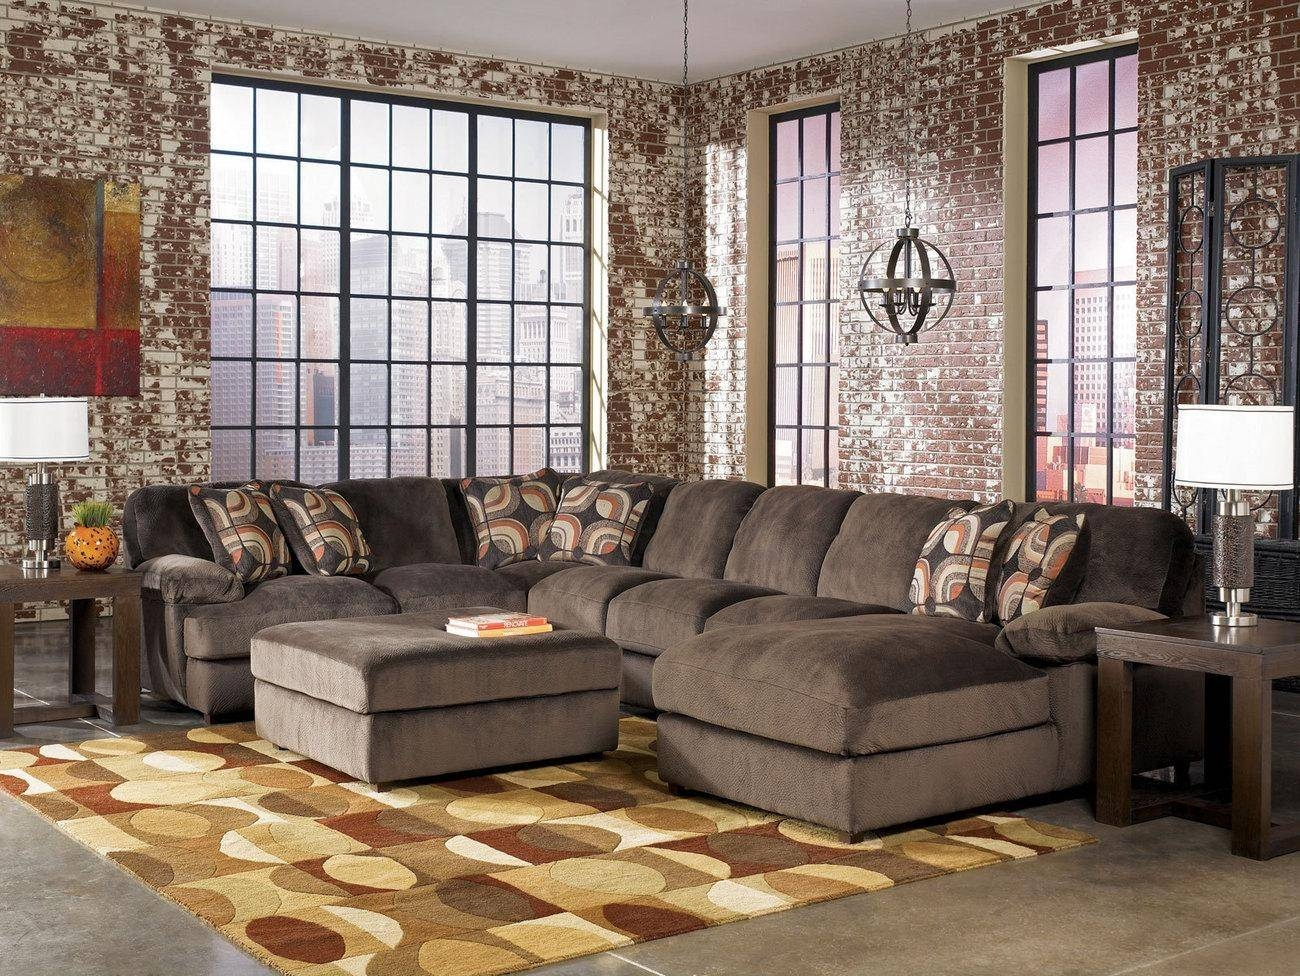 20 Inspirations Sealy Sofas | Sofa Ideas With Sealy Sofas (View 9 of 15)